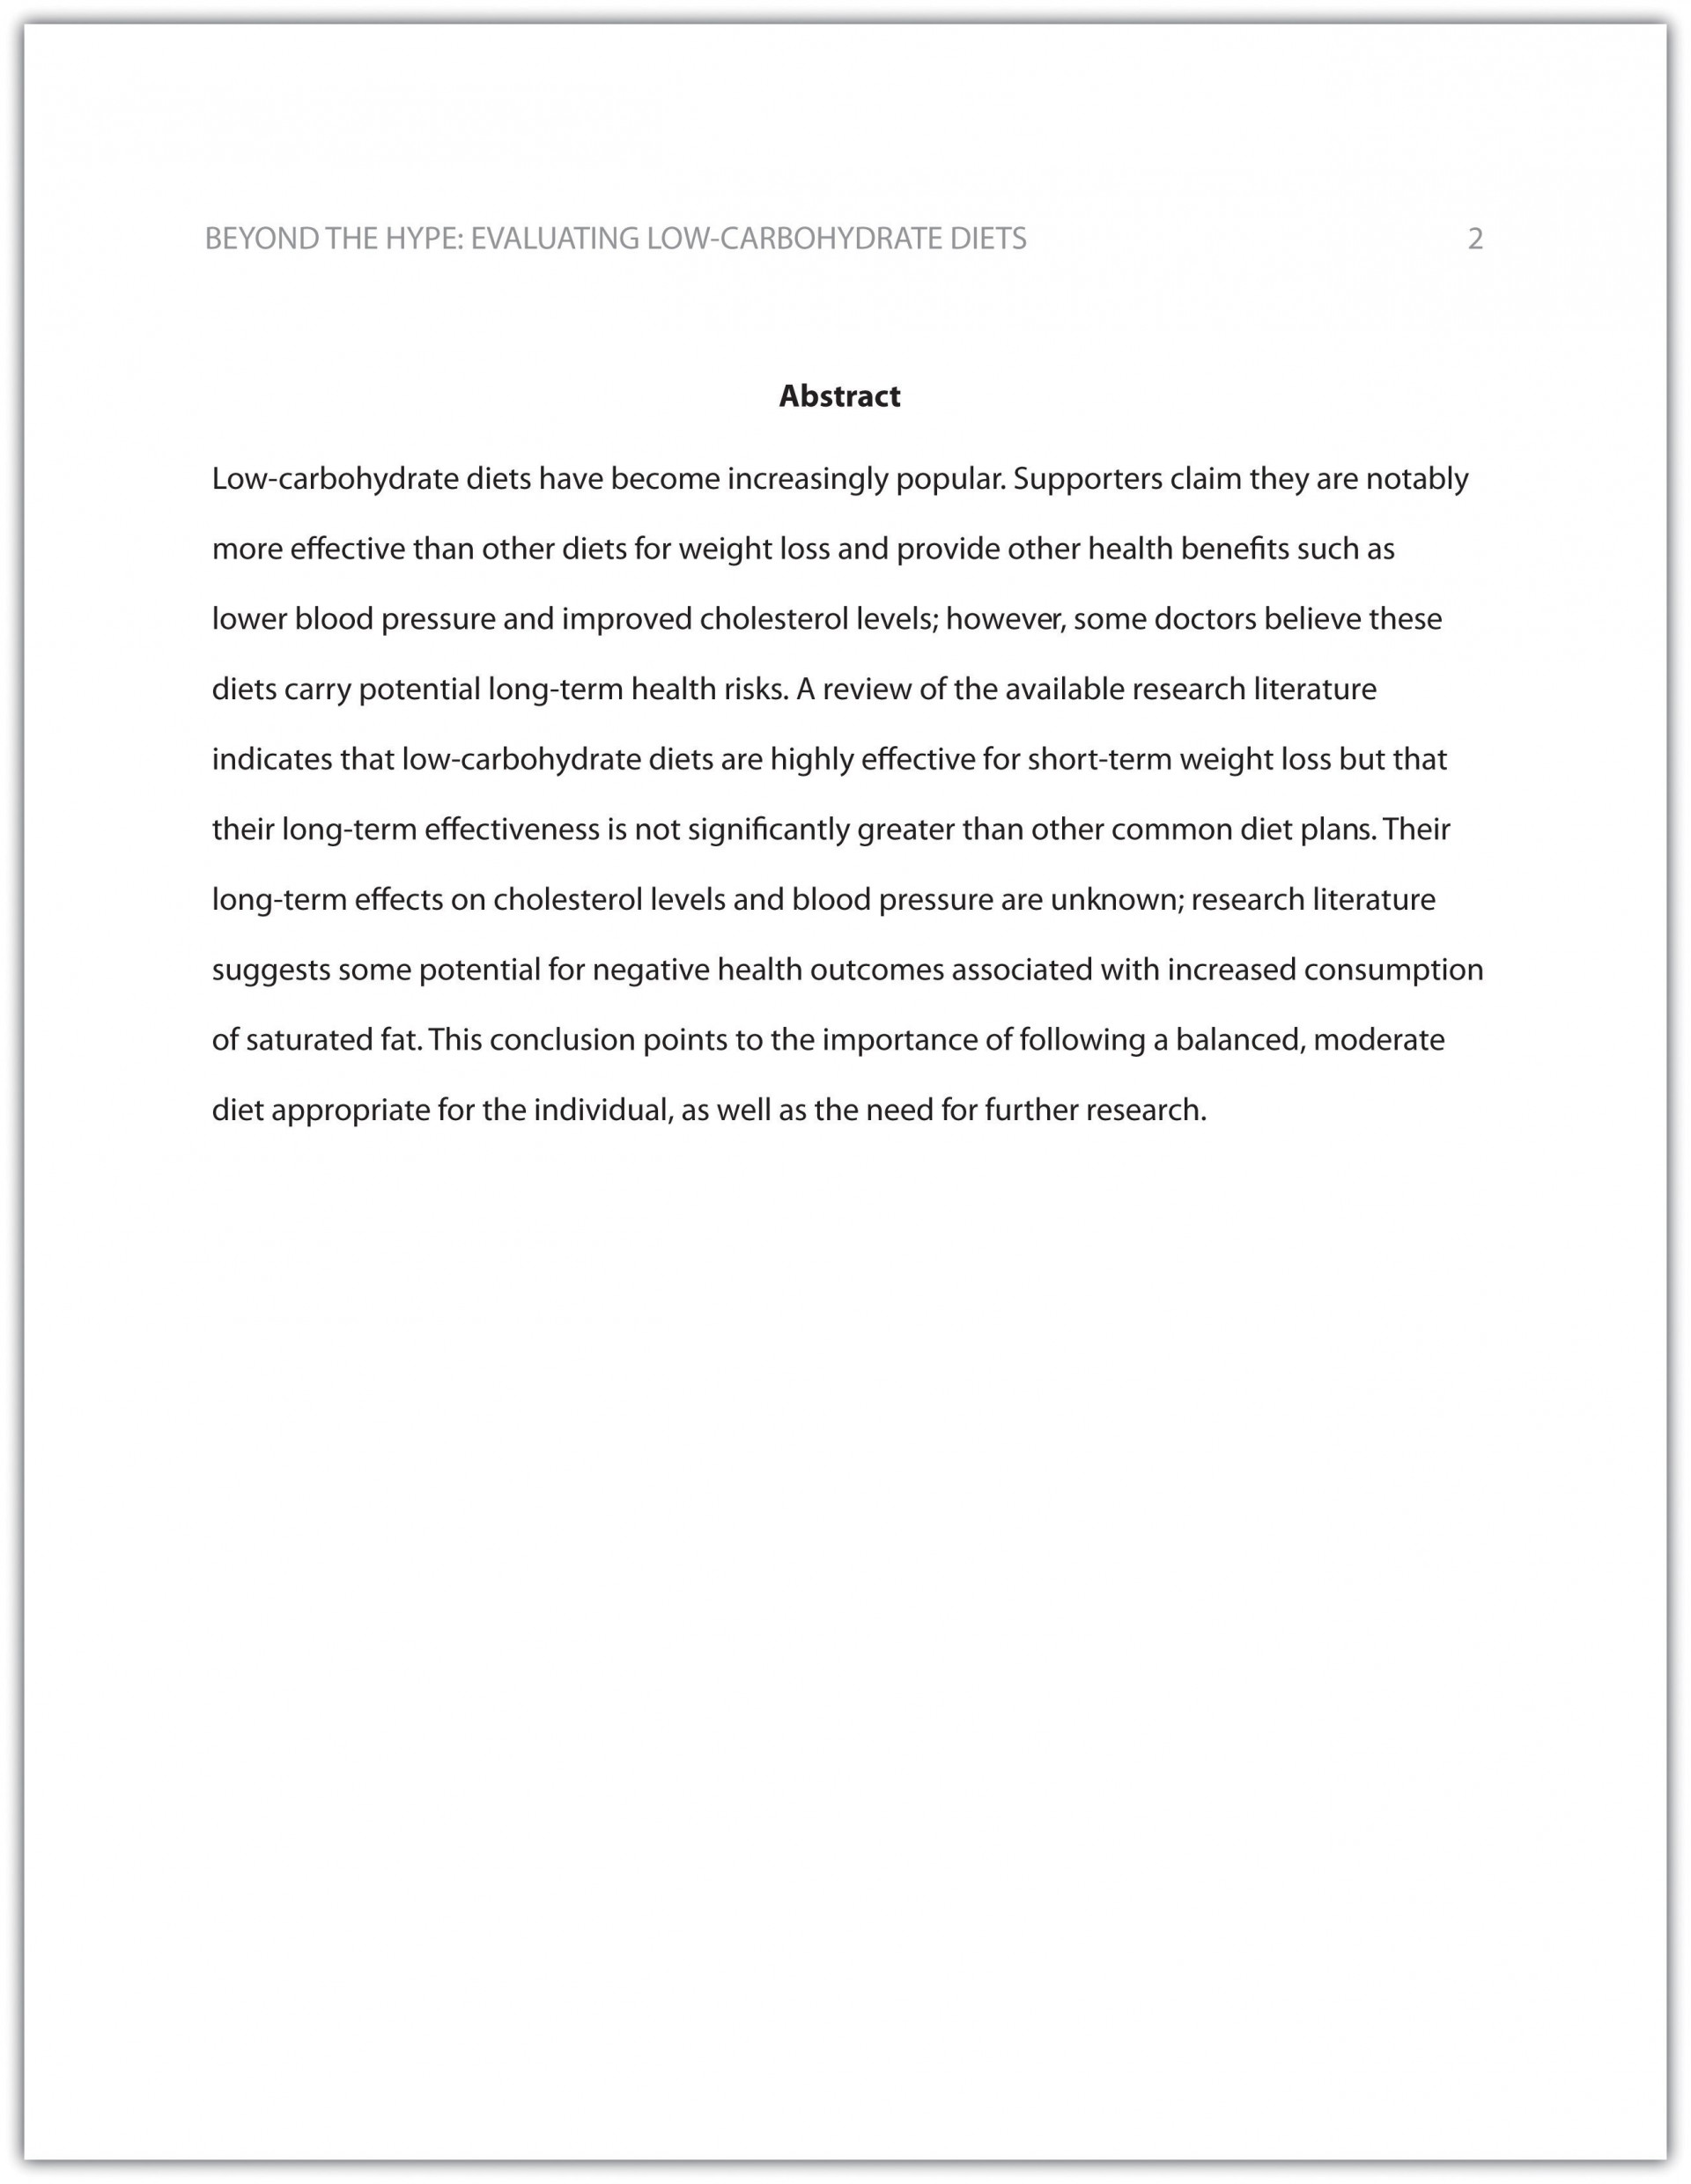 002 Abstract In Research Paper Apa Rare For Style Without 1920